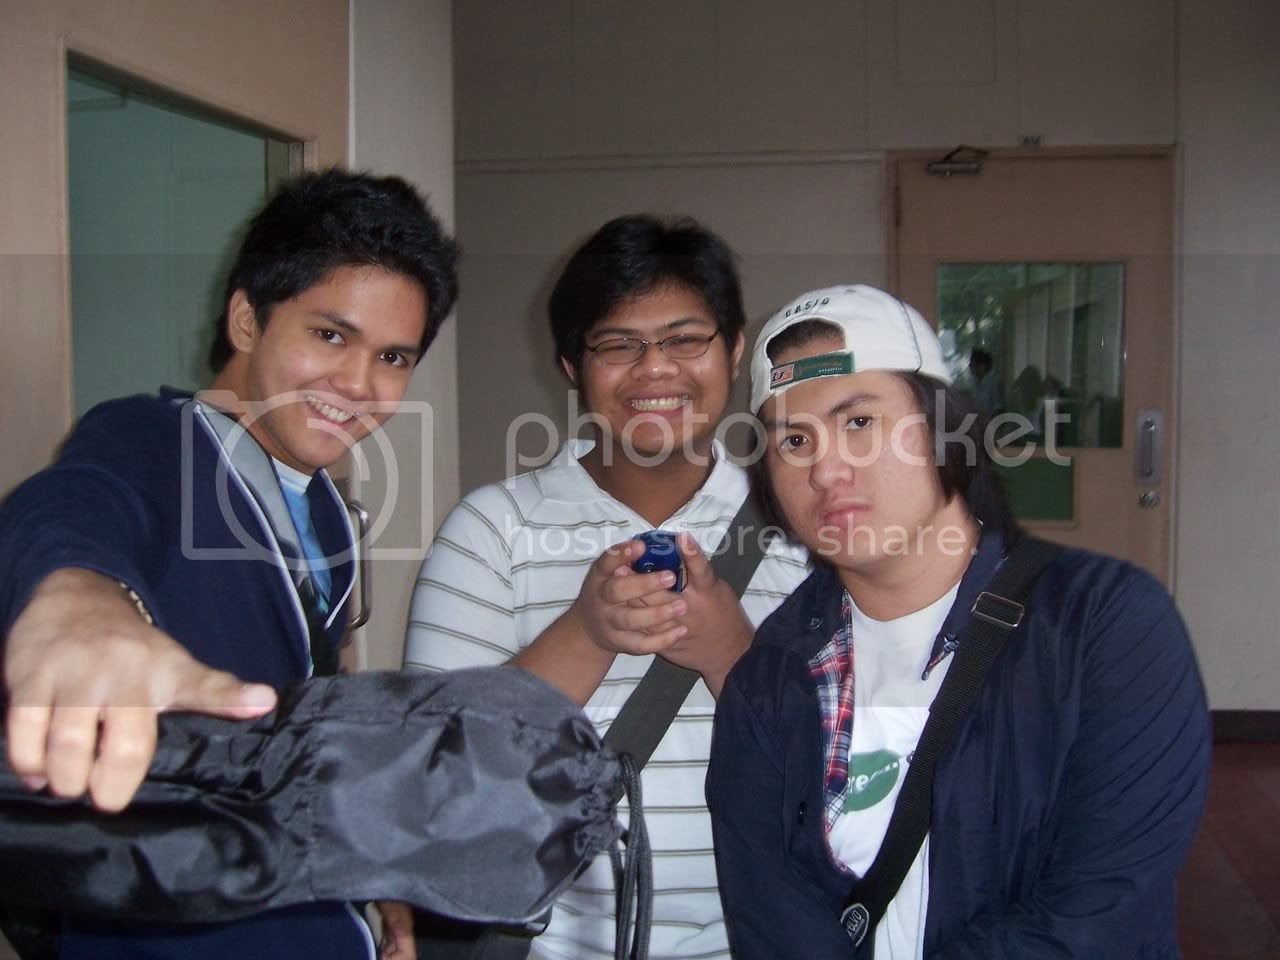 Jason, Sudoy and Huey actually proposed an 'angas' look, but it seems it didn't get followed. Image hosted by Photobucket